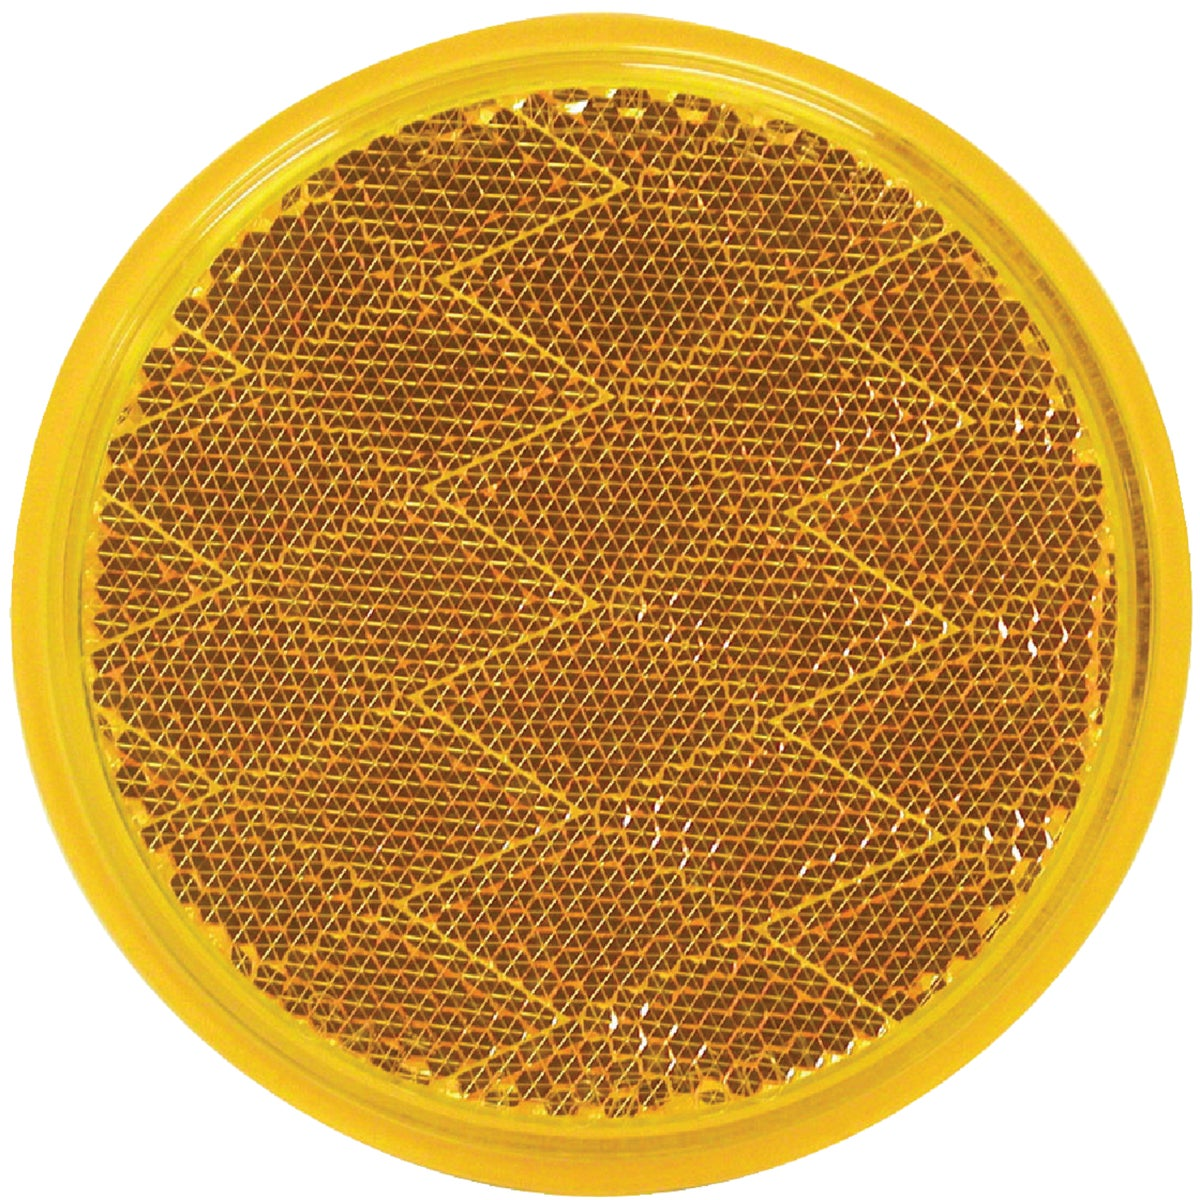 AMBER ROUND REFLECTOR - V475A by Peterson Mfg Co